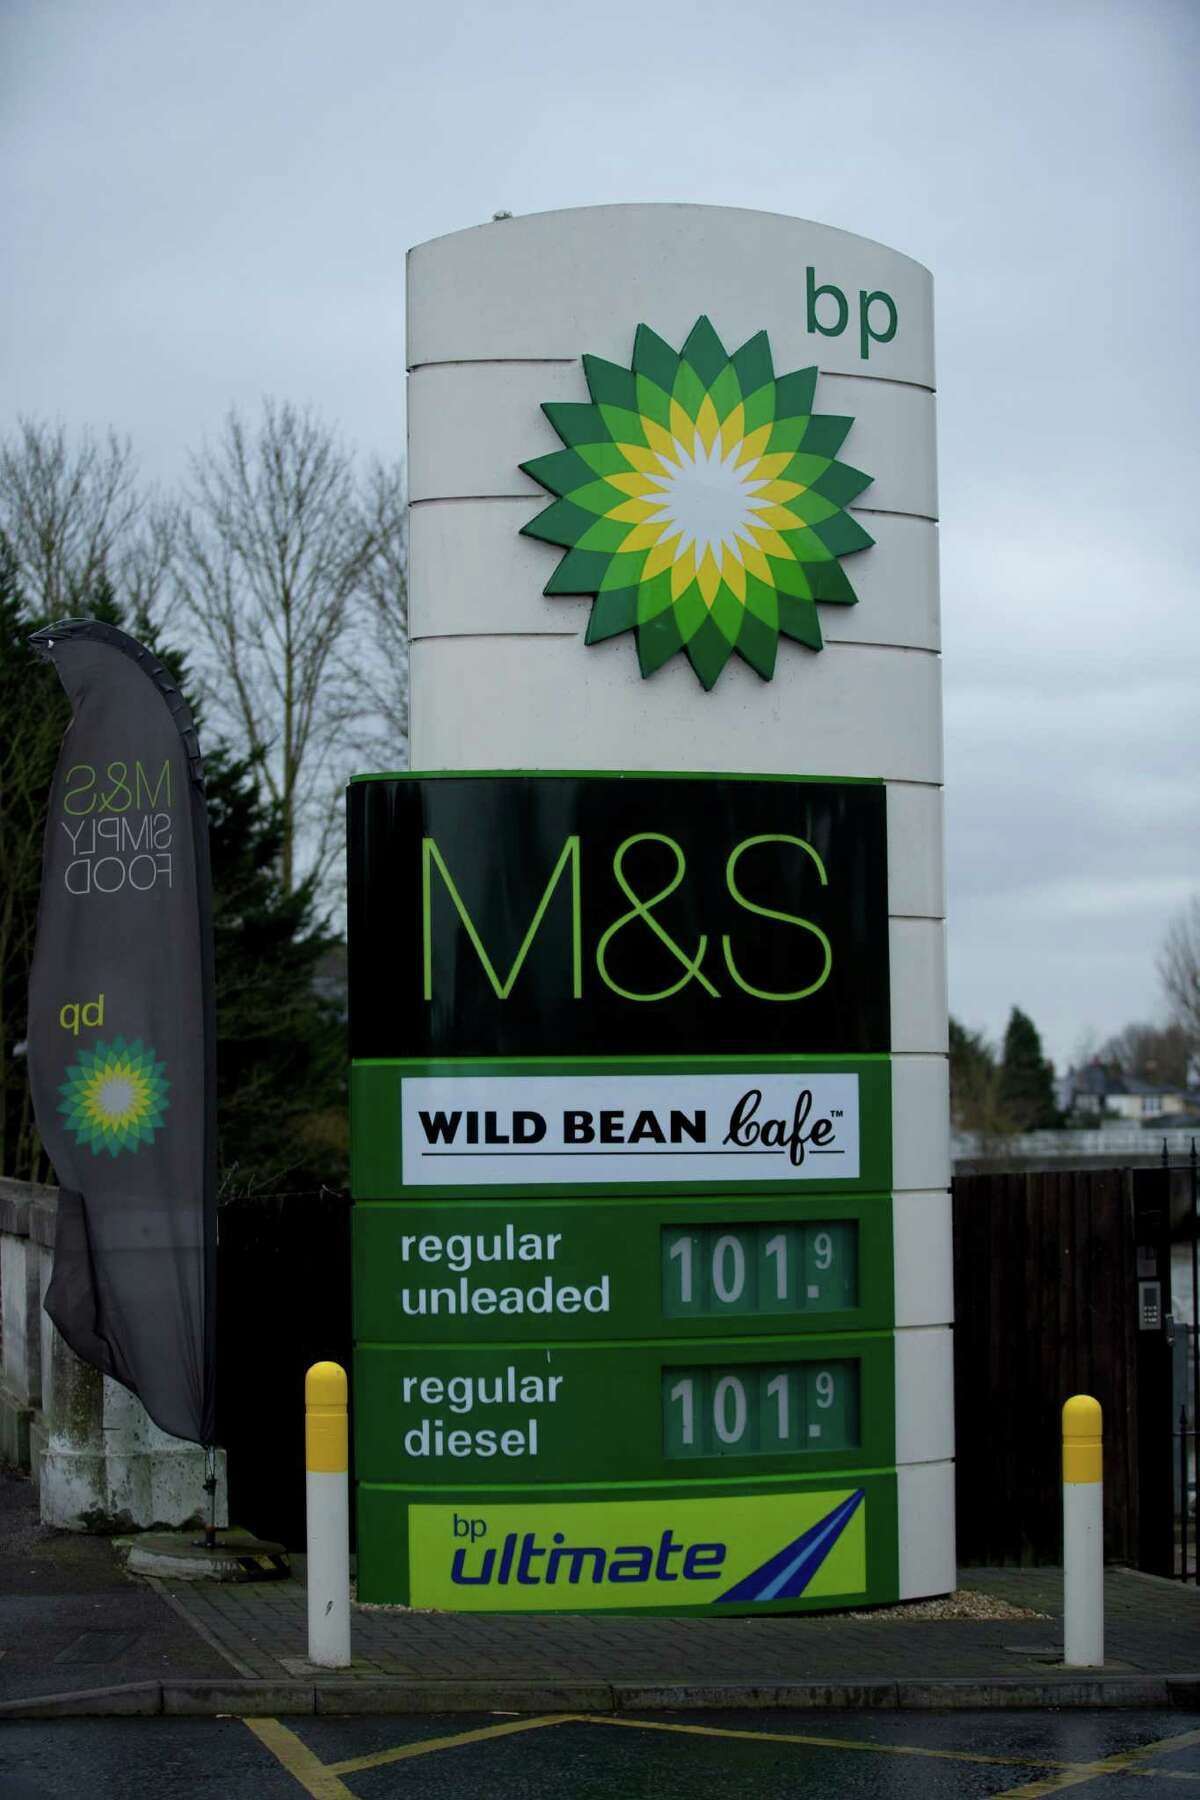 Fuel prices are displayed at a BP petrol station in East Molesey in the London area. Britain's BP saw its first-quarter earnings slump by 79 percent.